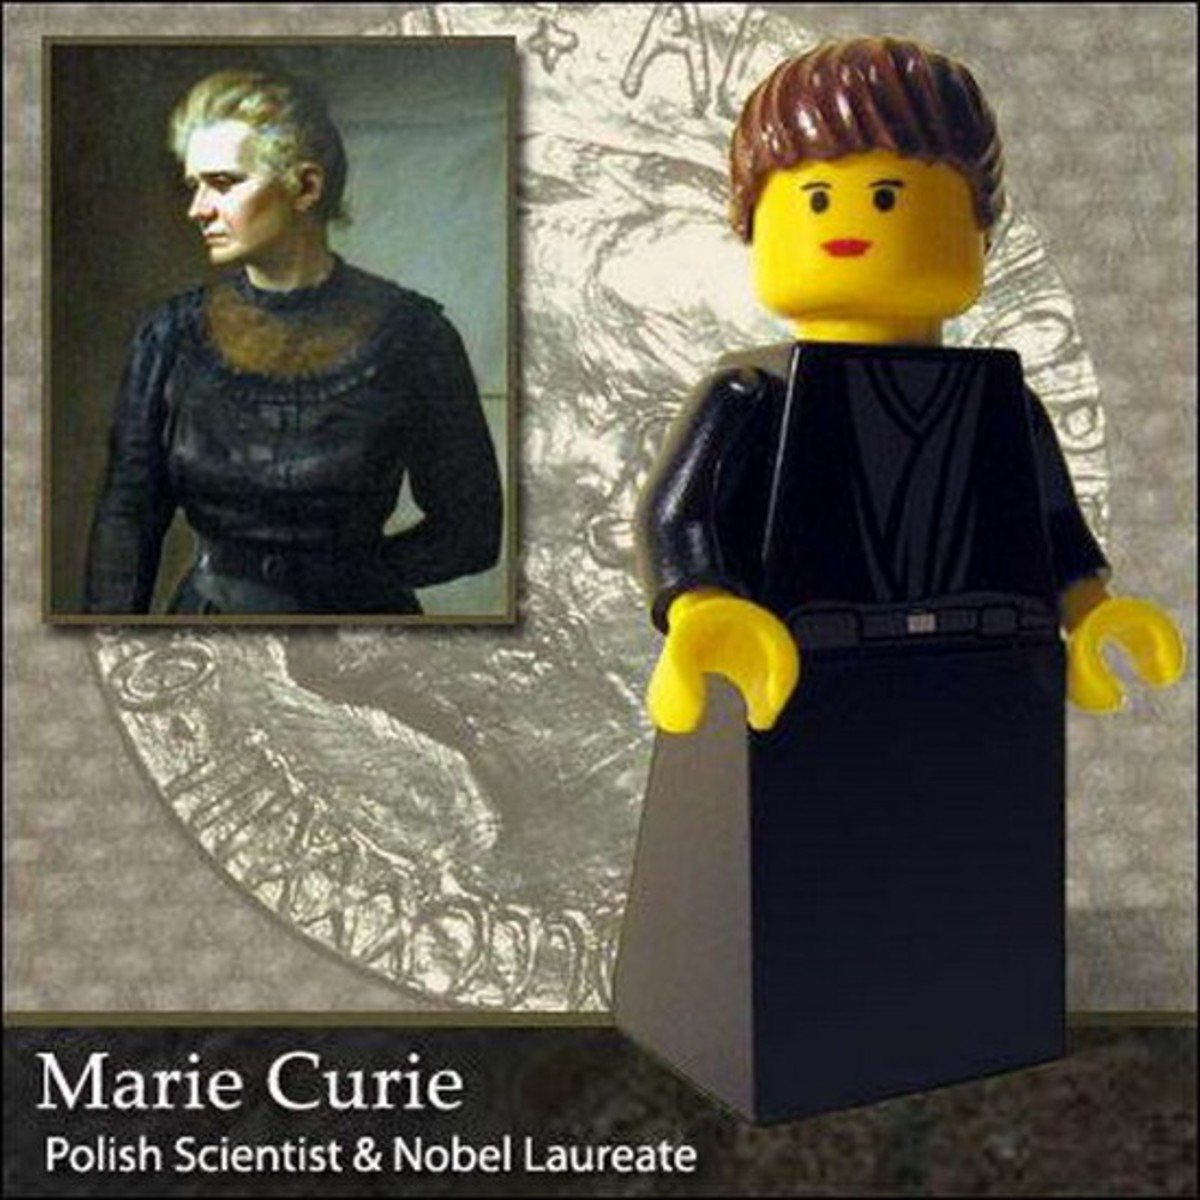 Marie Curie Lego Photo